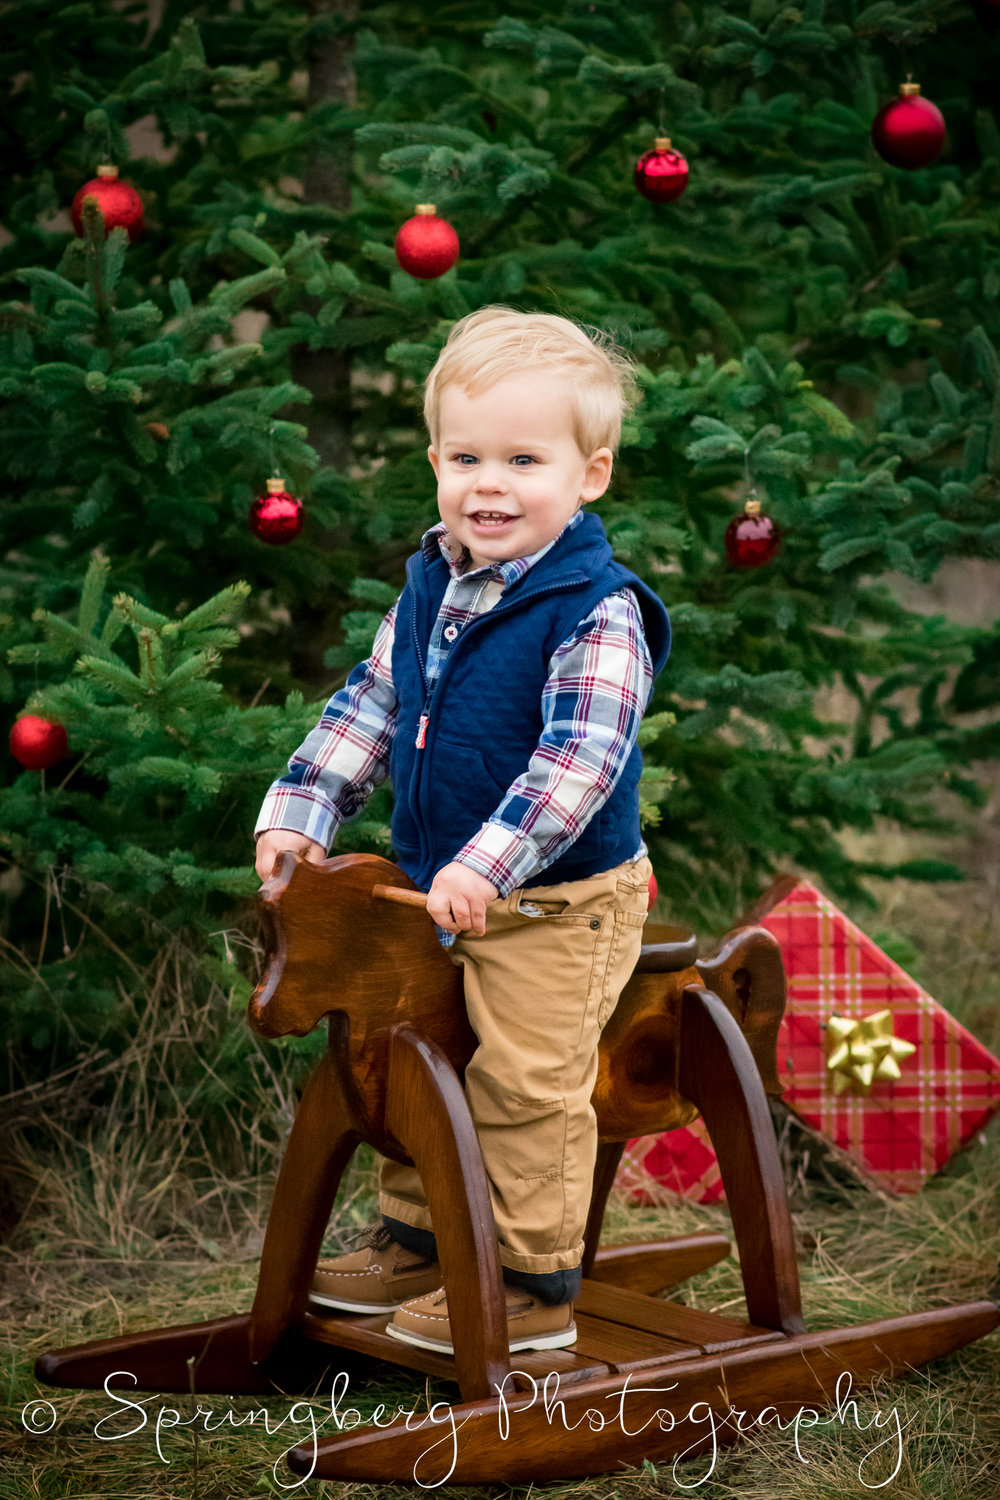 Props can enhance the themes for certain portrait session purposes, and make them more obvious: Birthdays, Holidays, New Family Member, Change of Seasons, etc.